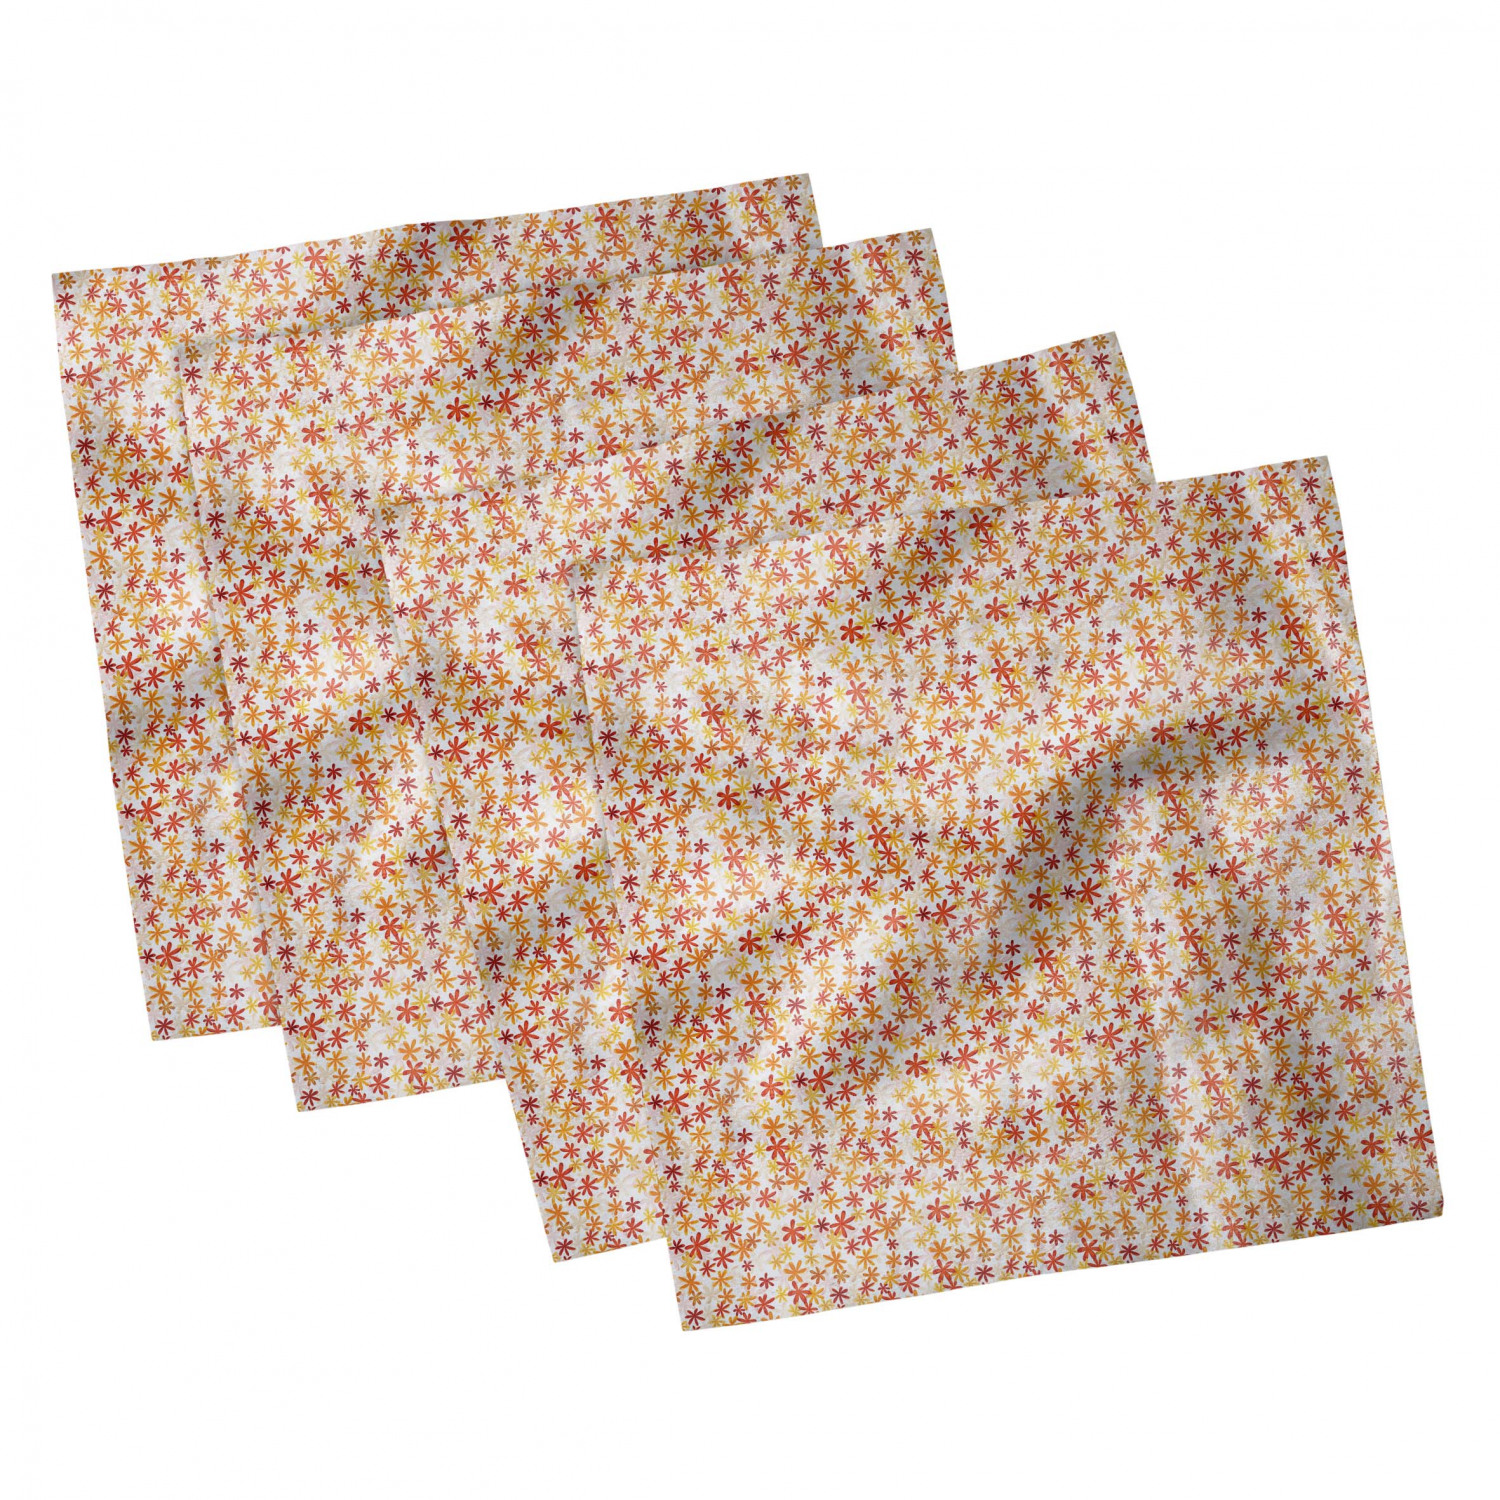 thumbnail 31 - Ambesonne-Autumn-Fall-Decorative-Satin-Napkins-Set-of-4-Party-Dinner-Fabric